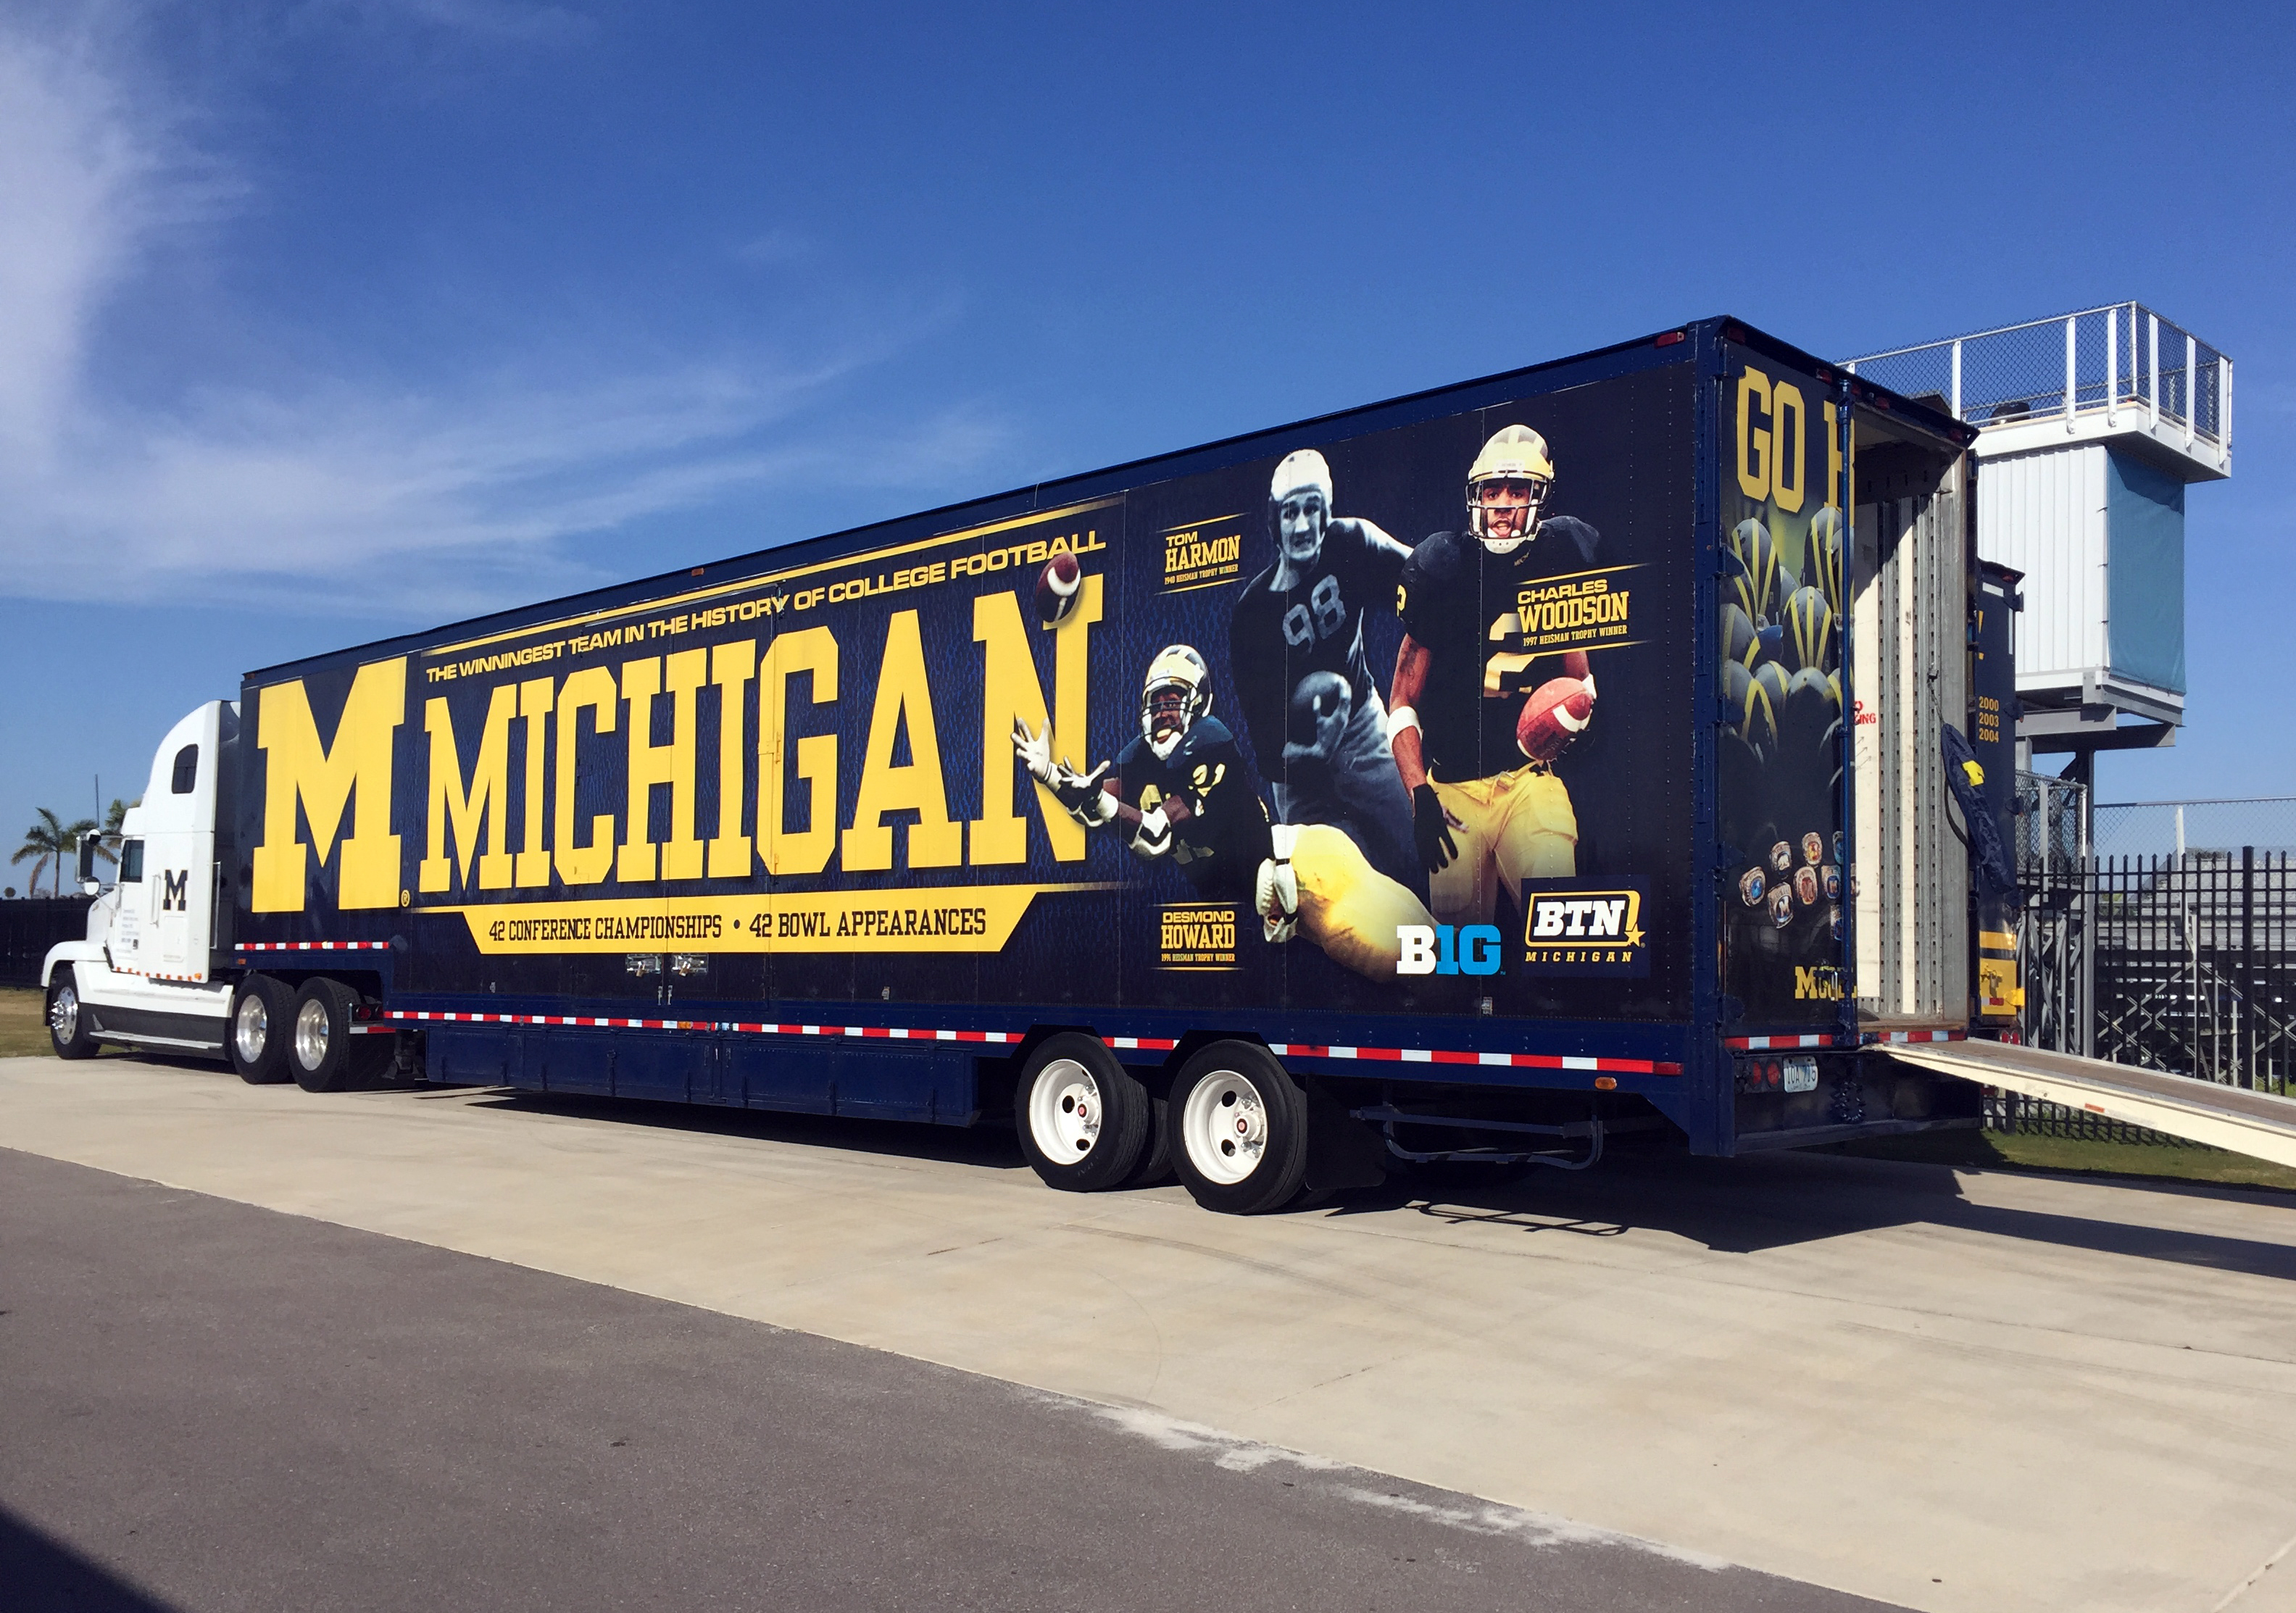 A University of Michigan equipment truck is parked next to a practice field Tuesday, March 1, 2016, at IMG Academy in Bradenton, Fla. The Wolverines are spending a week at the boarding school for elite athletes, holding spring NCAA college football practi